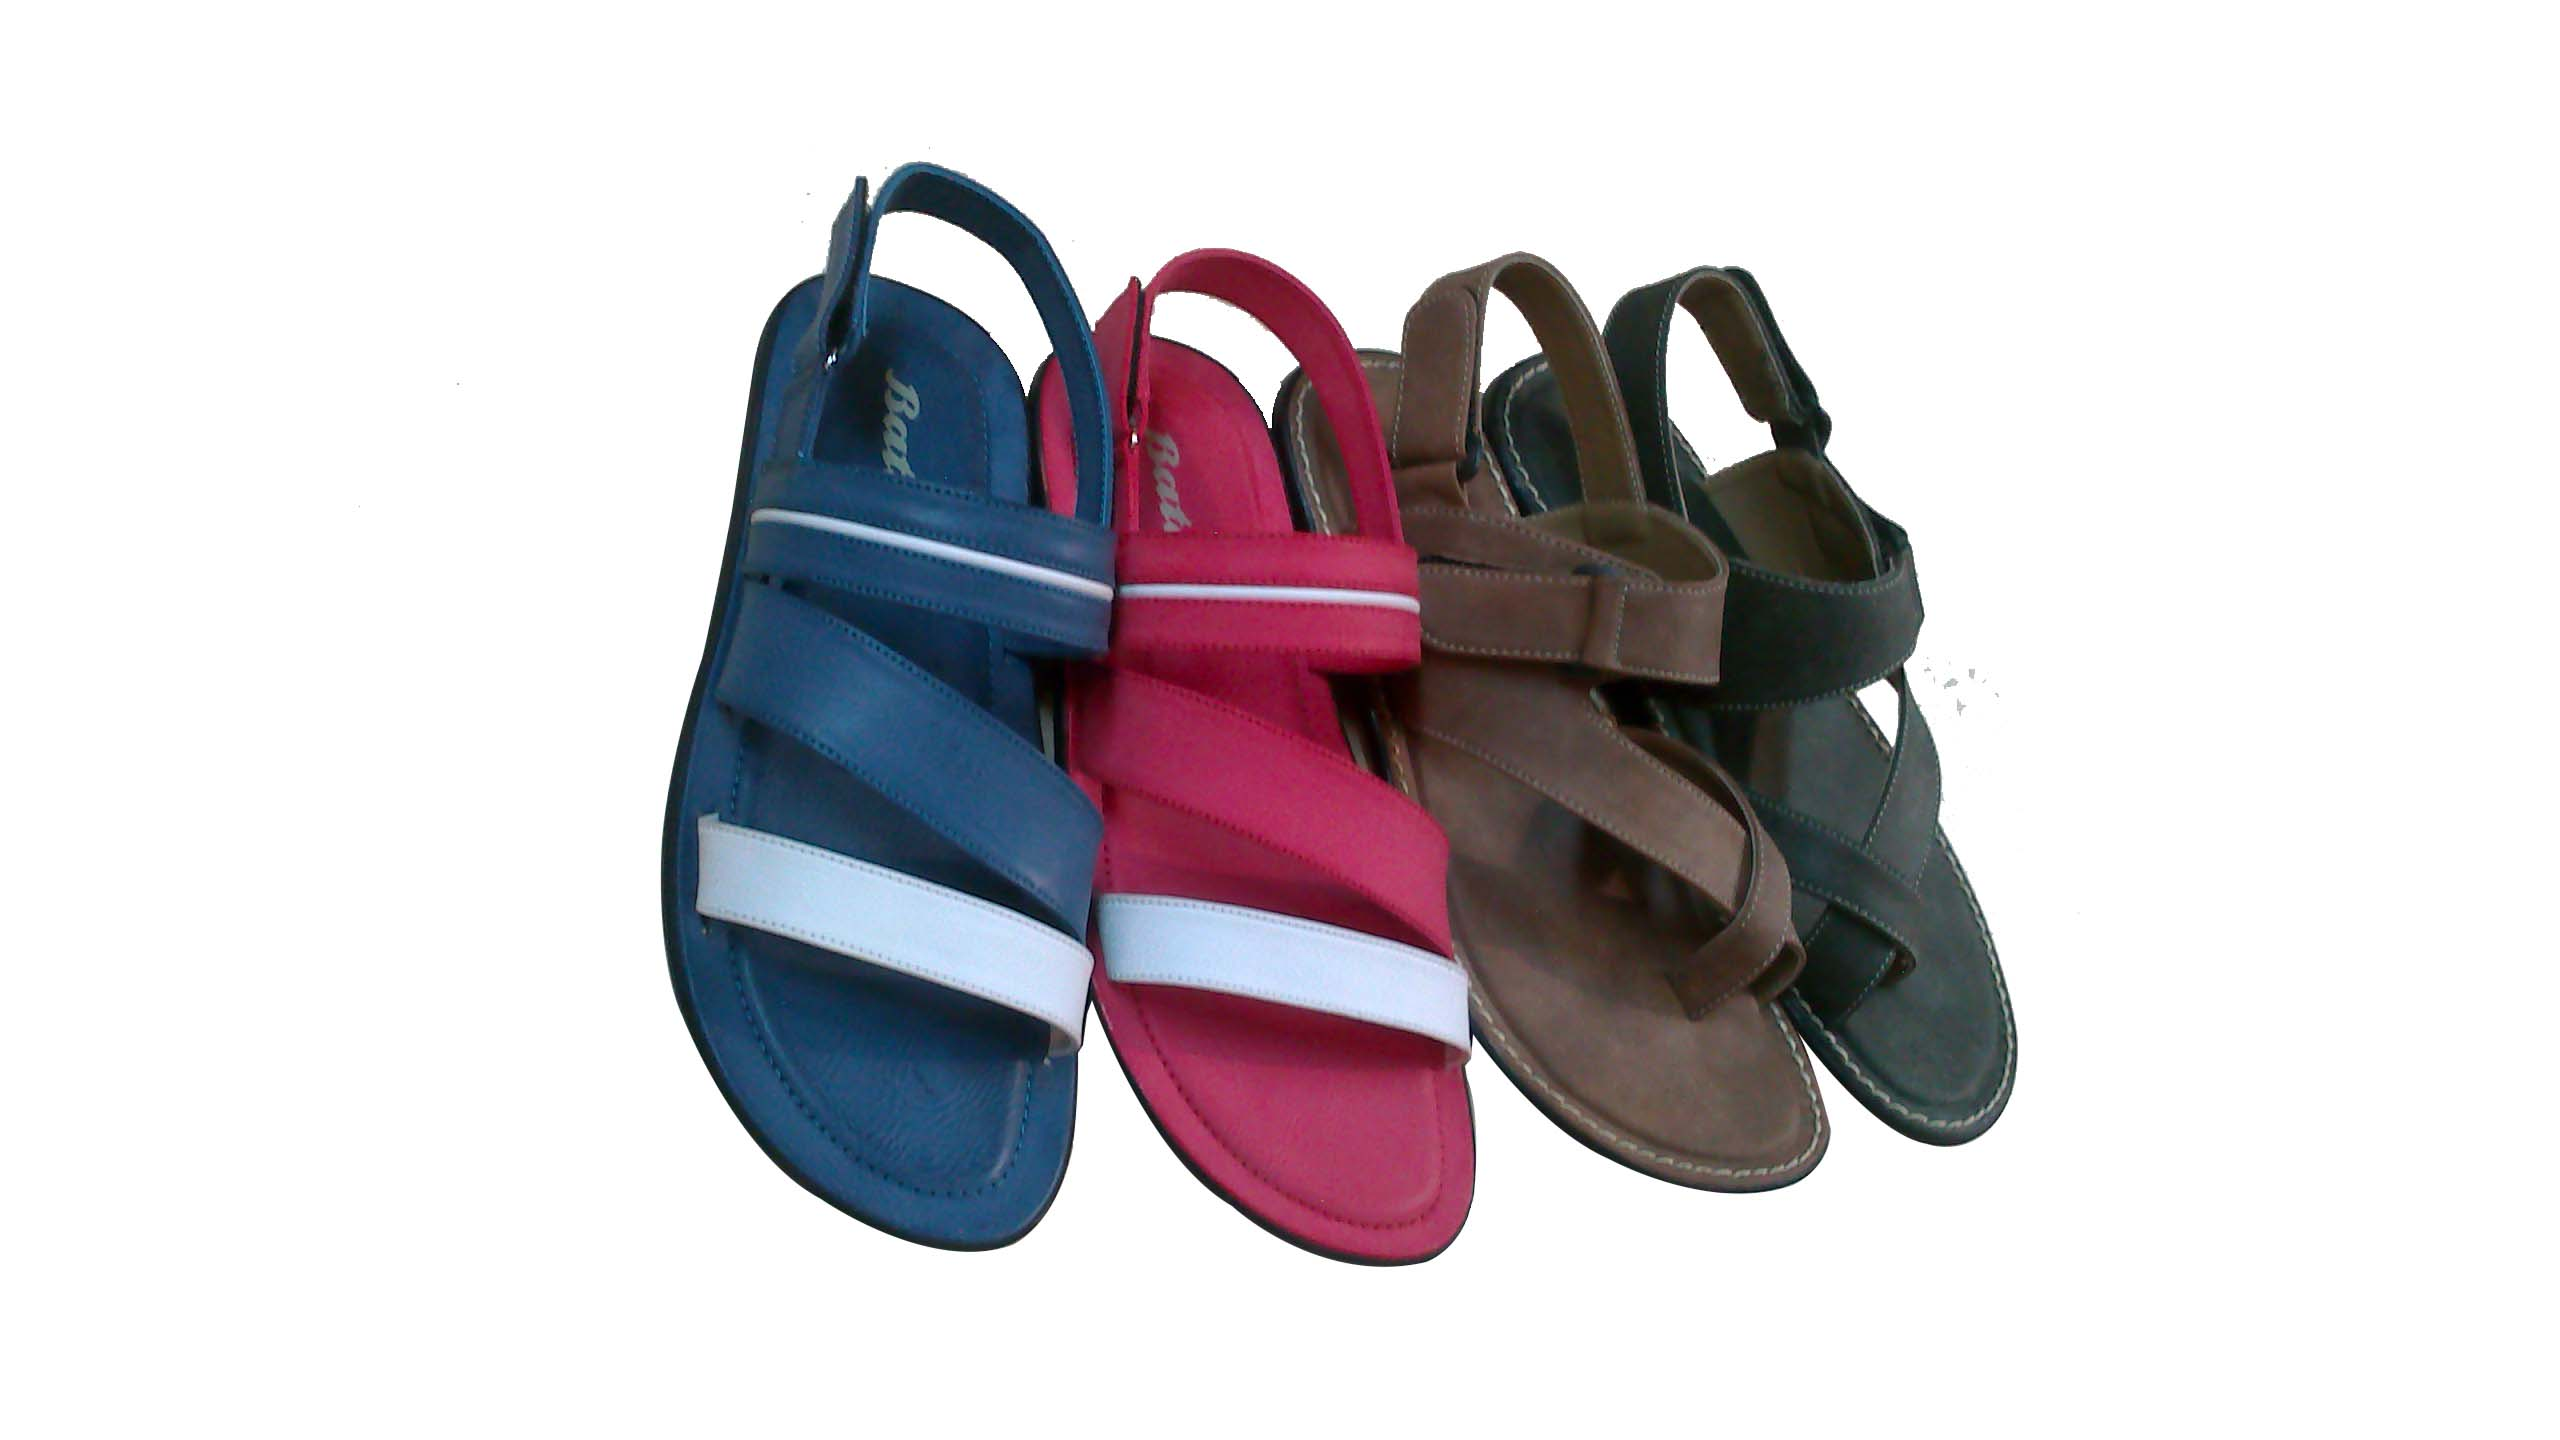 Sandals in Vibrant Colors